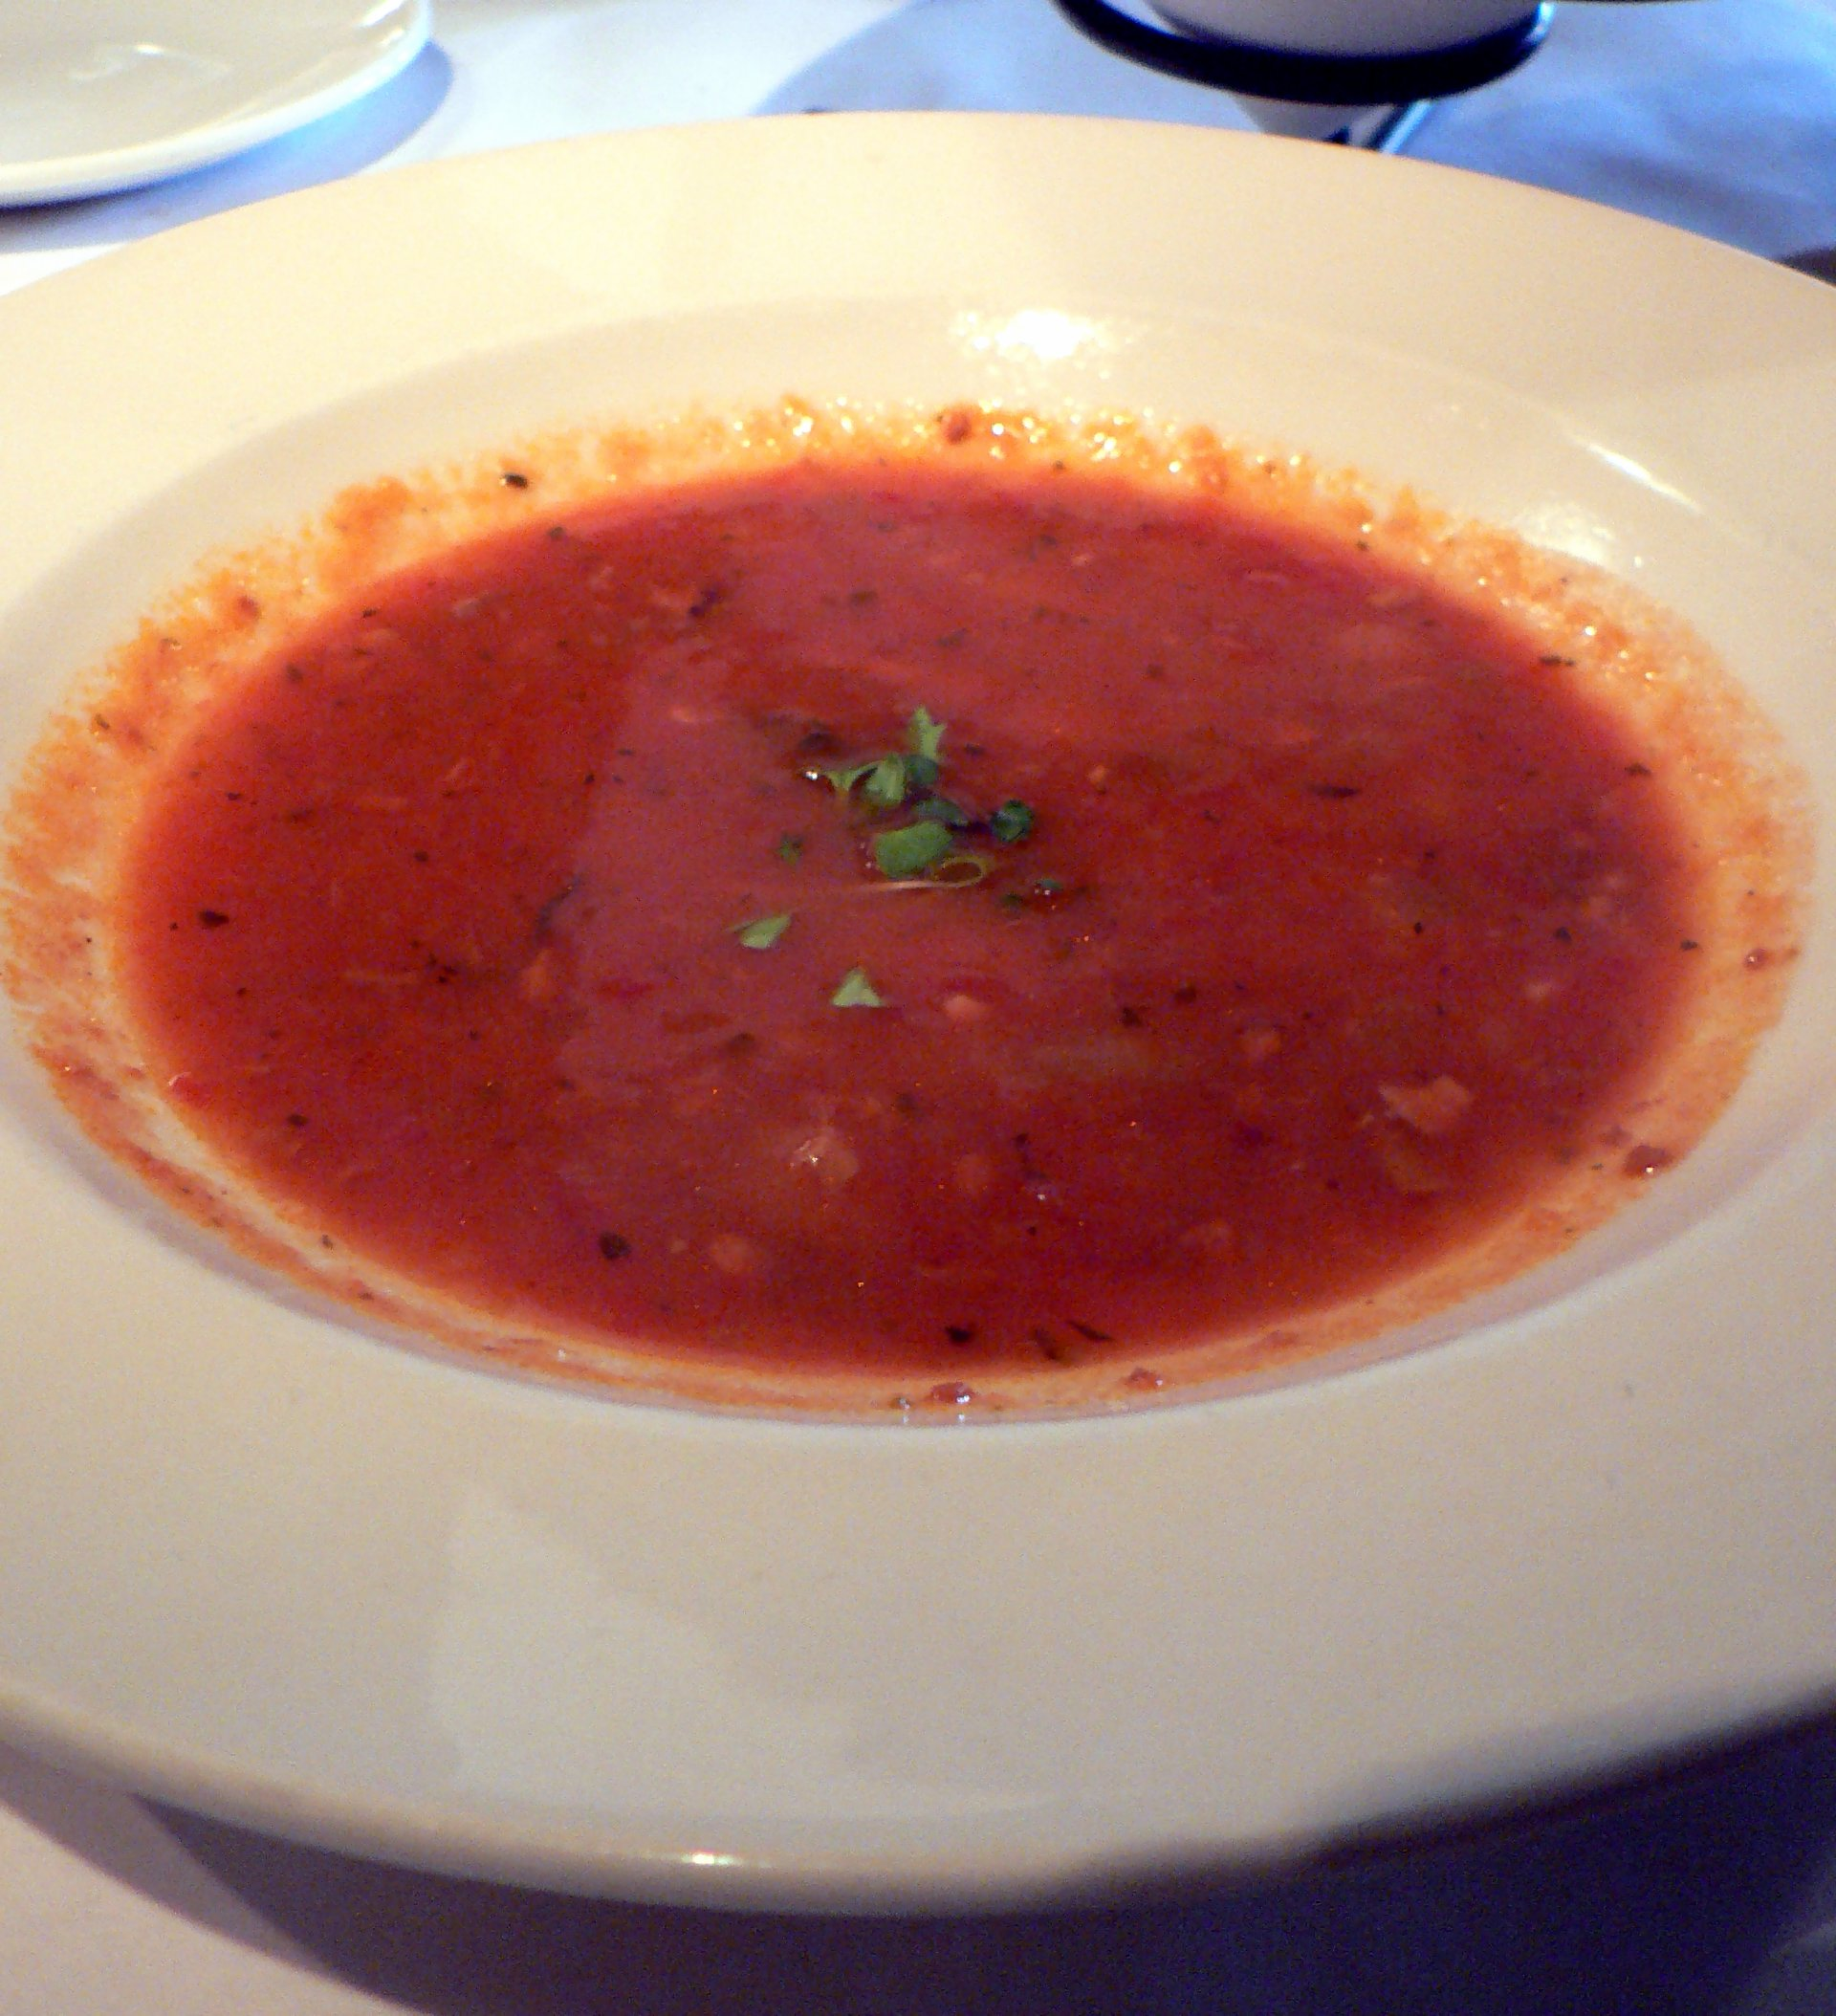 File:ManhattanClamChowder.jpg - Wikimedia Commons